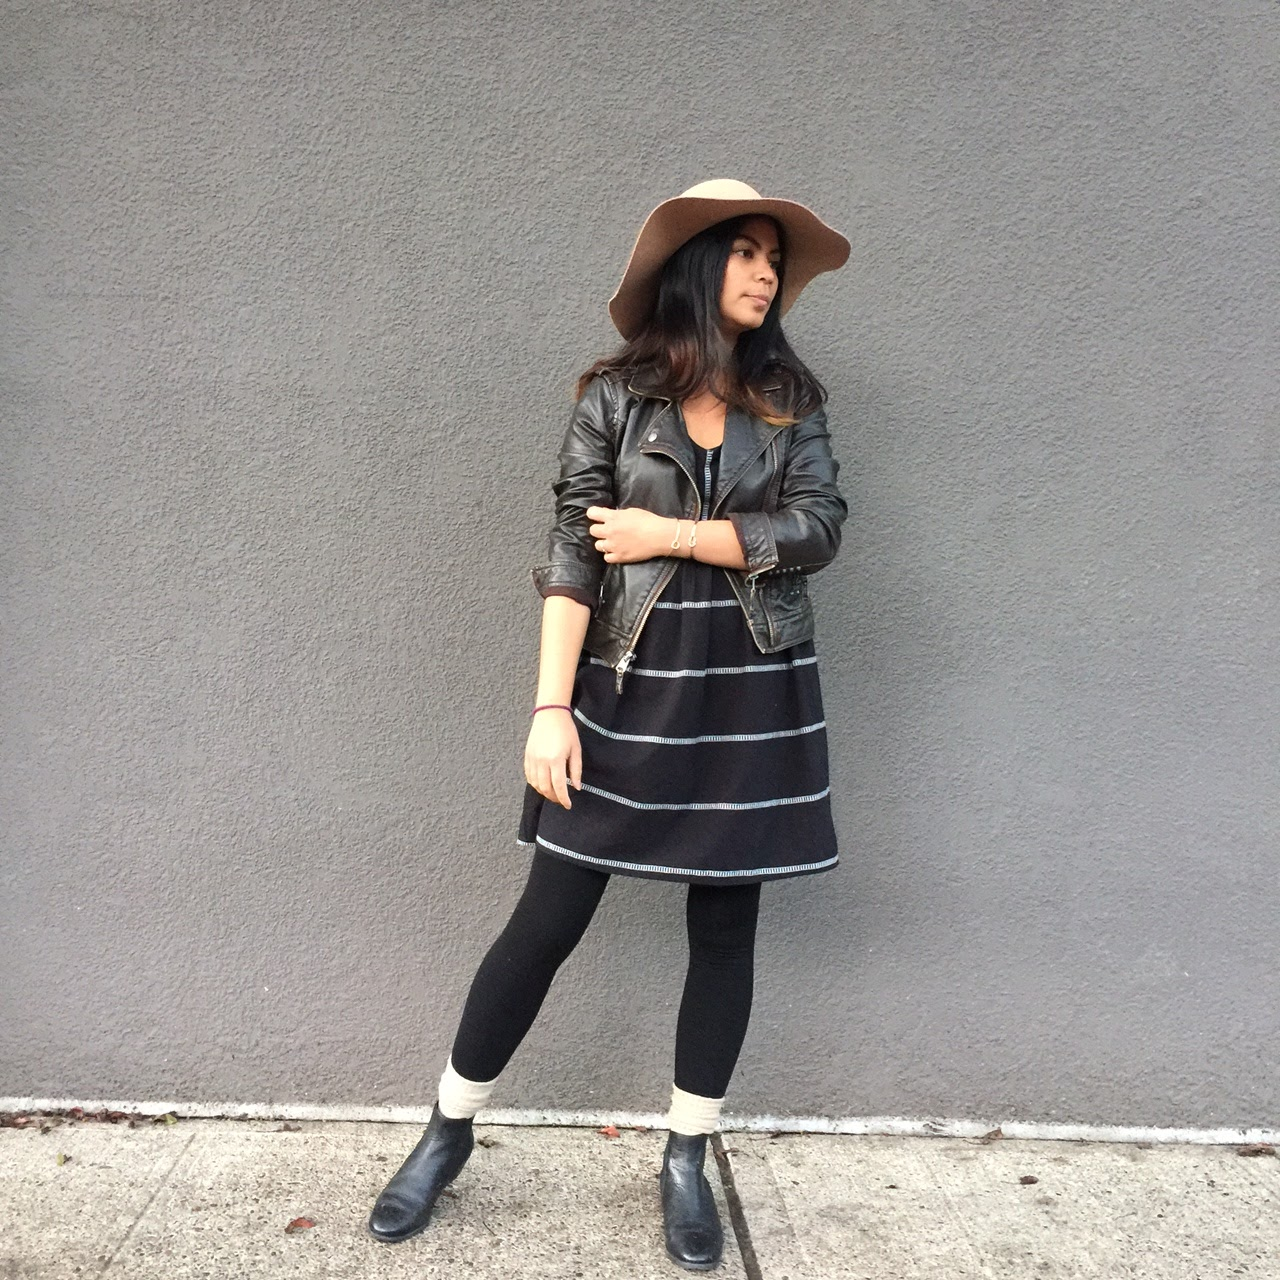 black baby doll dress, wide brim hat, old navy, ross dress for less, bargainista, affordable fashion, portland fashion blogger, ootd, fall fashion, oregon blogger